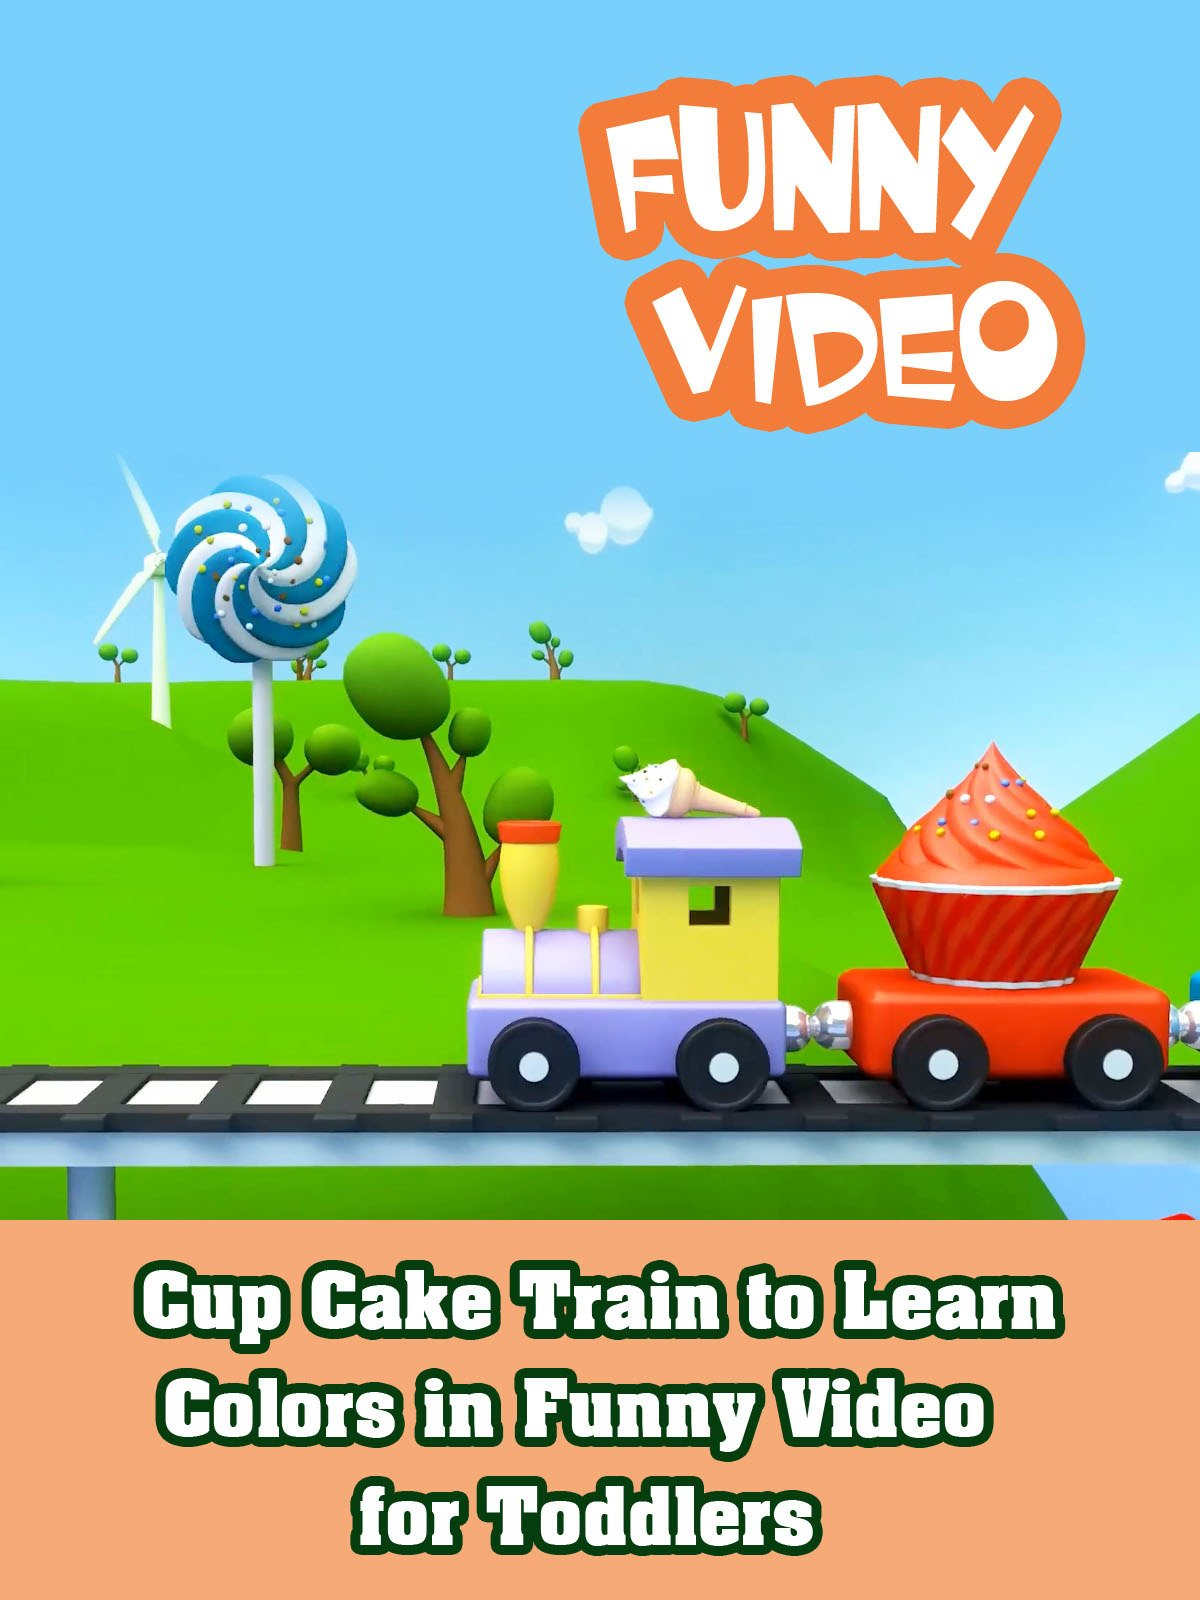 Cup Cake Train to Learn Colors in Funny Video for Toddlers